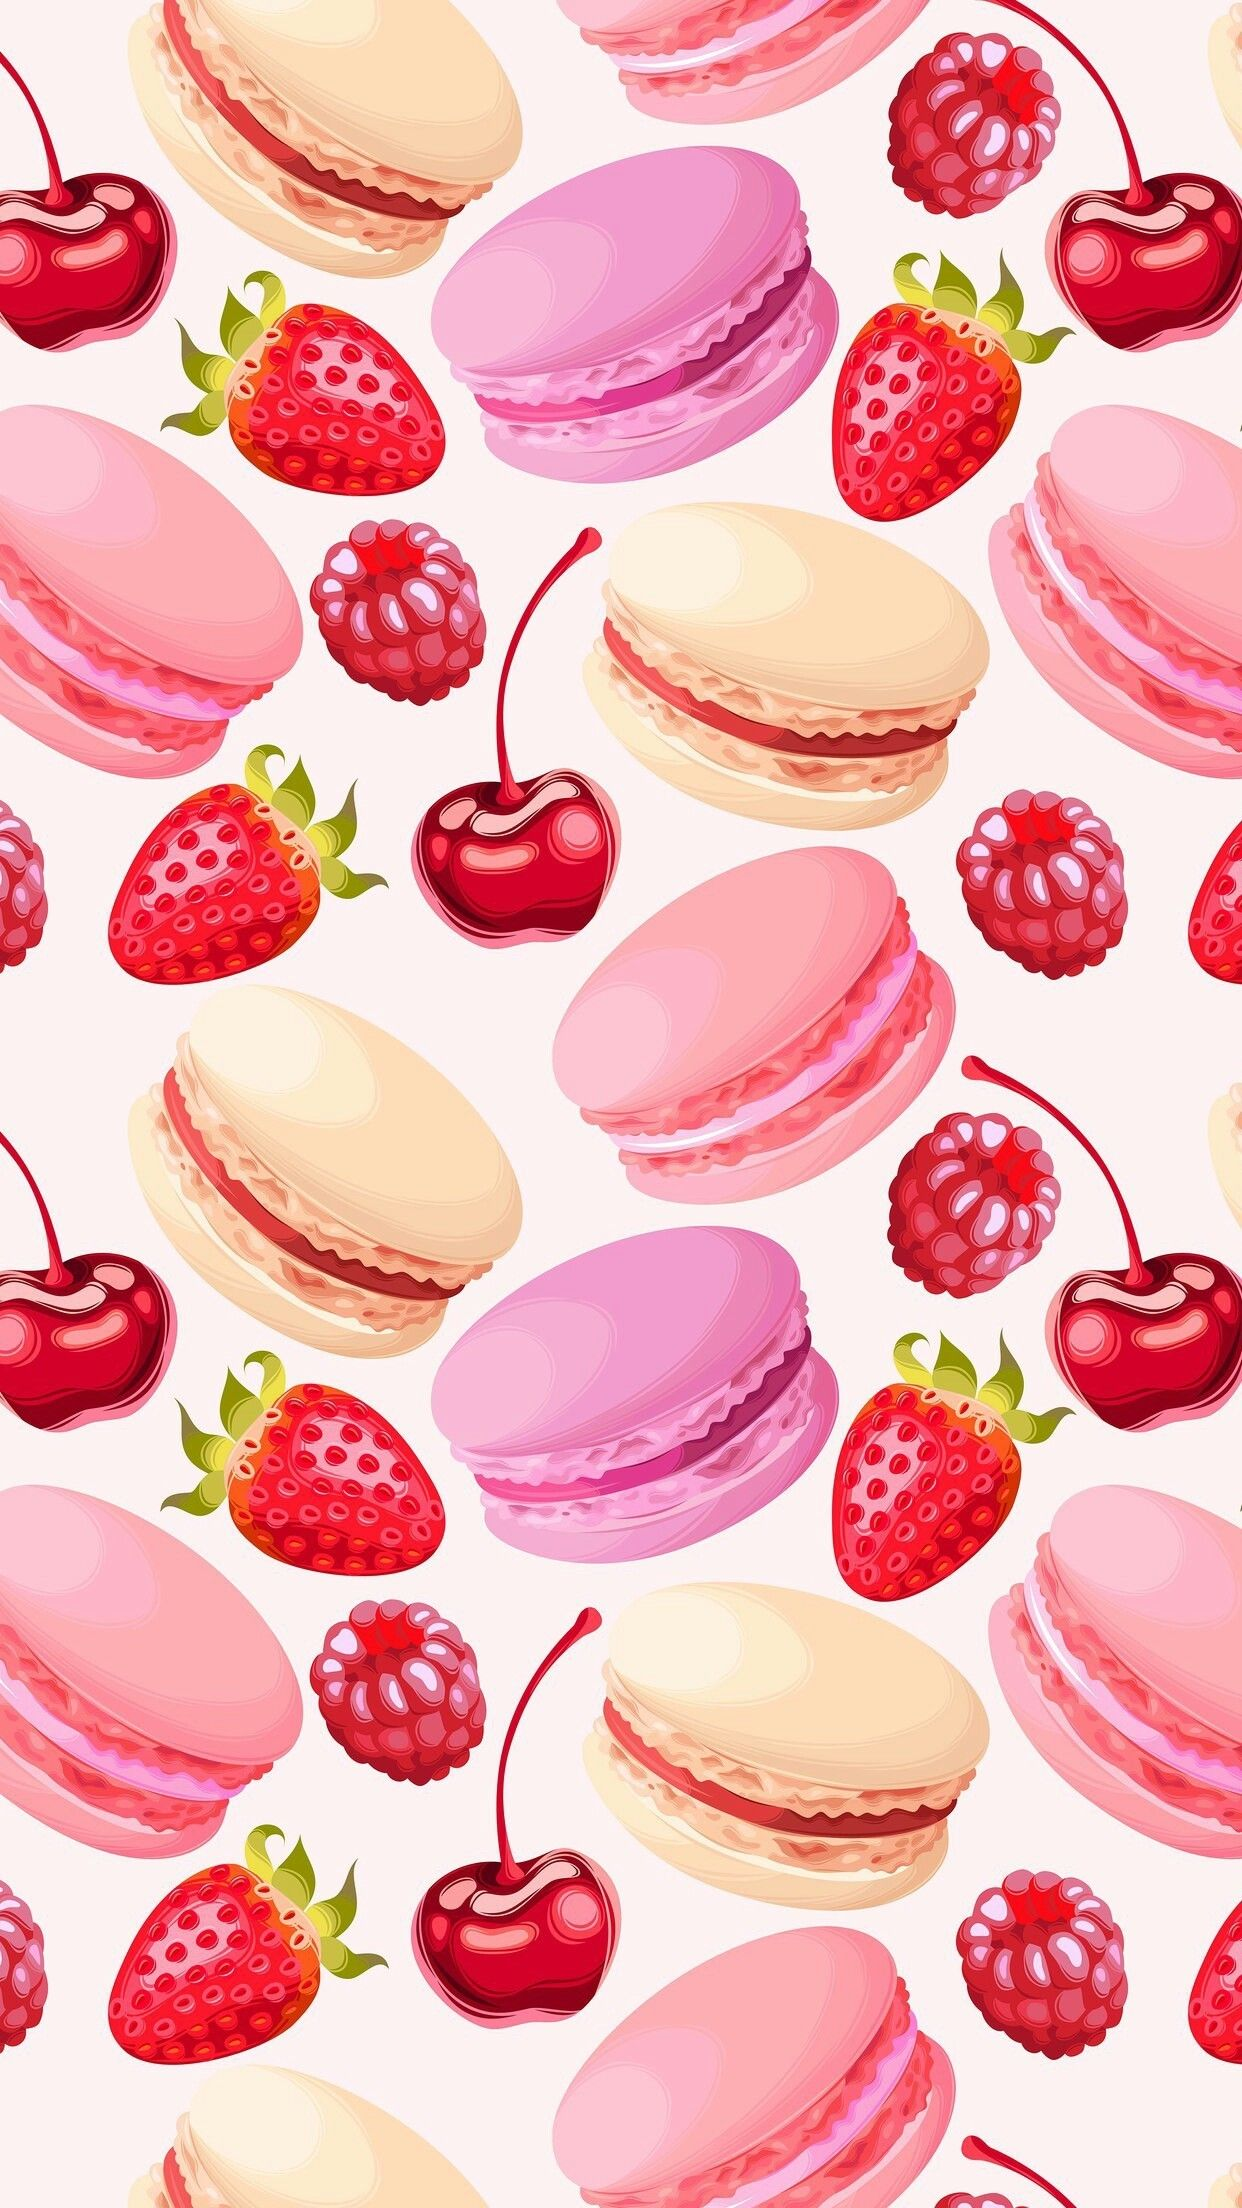 Strawberry Aesthetic Wallpapers On Wallpaperdog